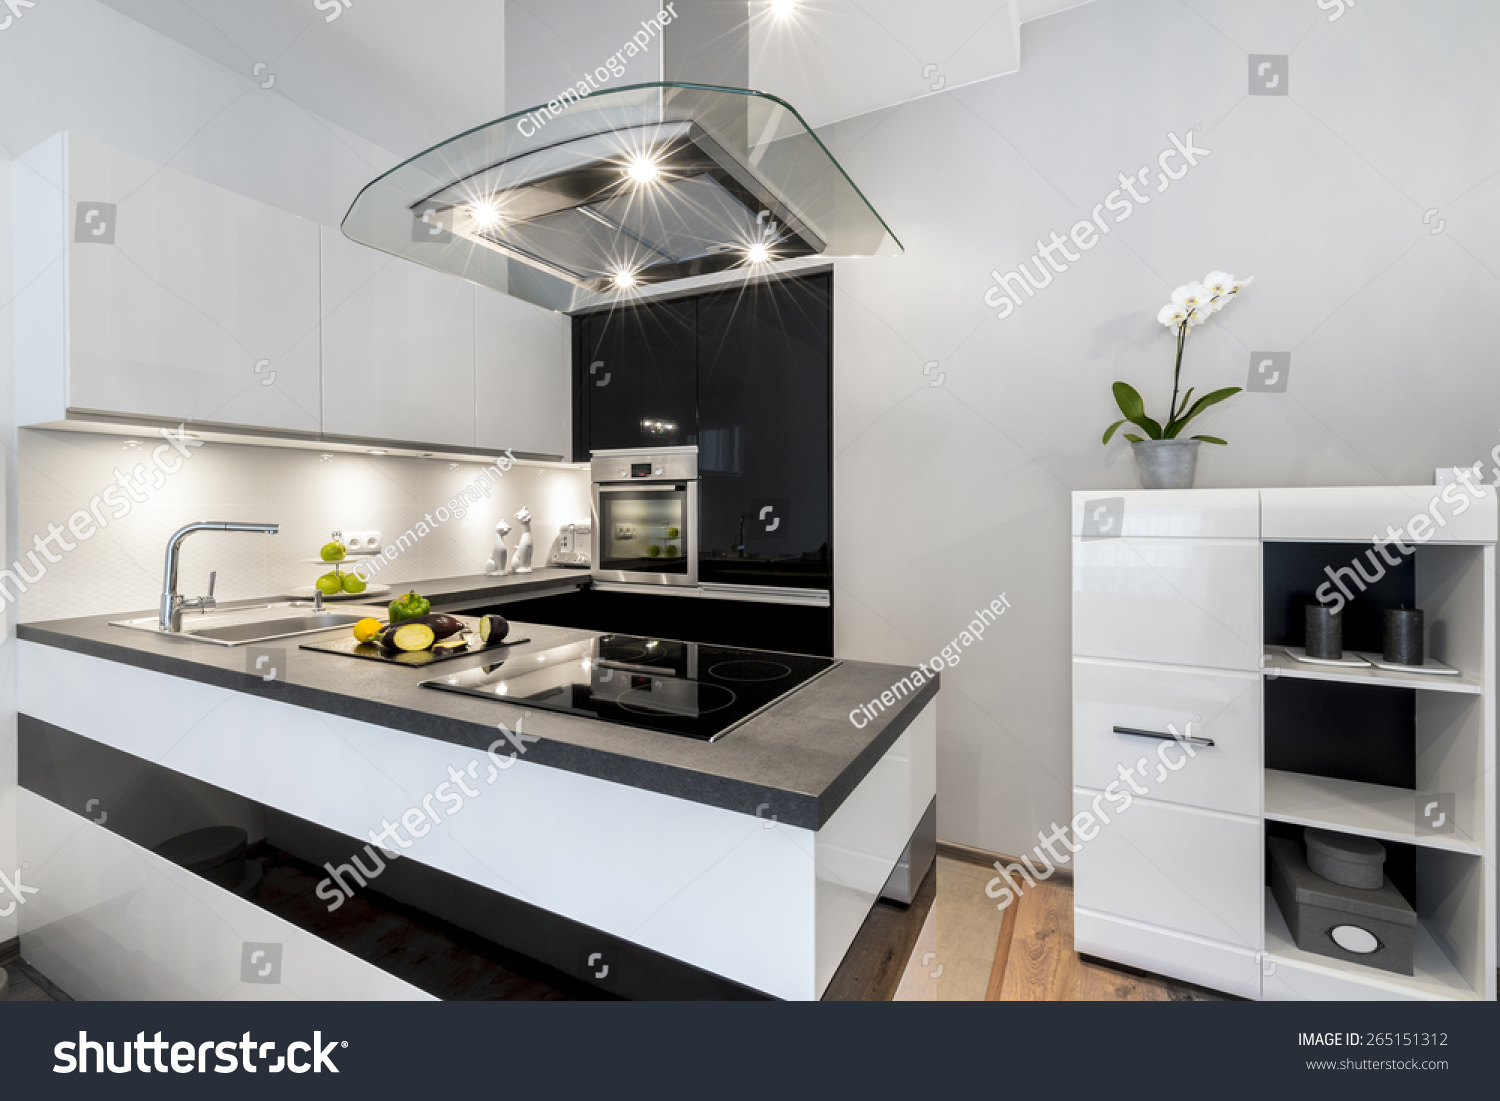 Black white kitchen modern interior design stock photo 265151312 shutterstock - Modern house interior design kitchen ...